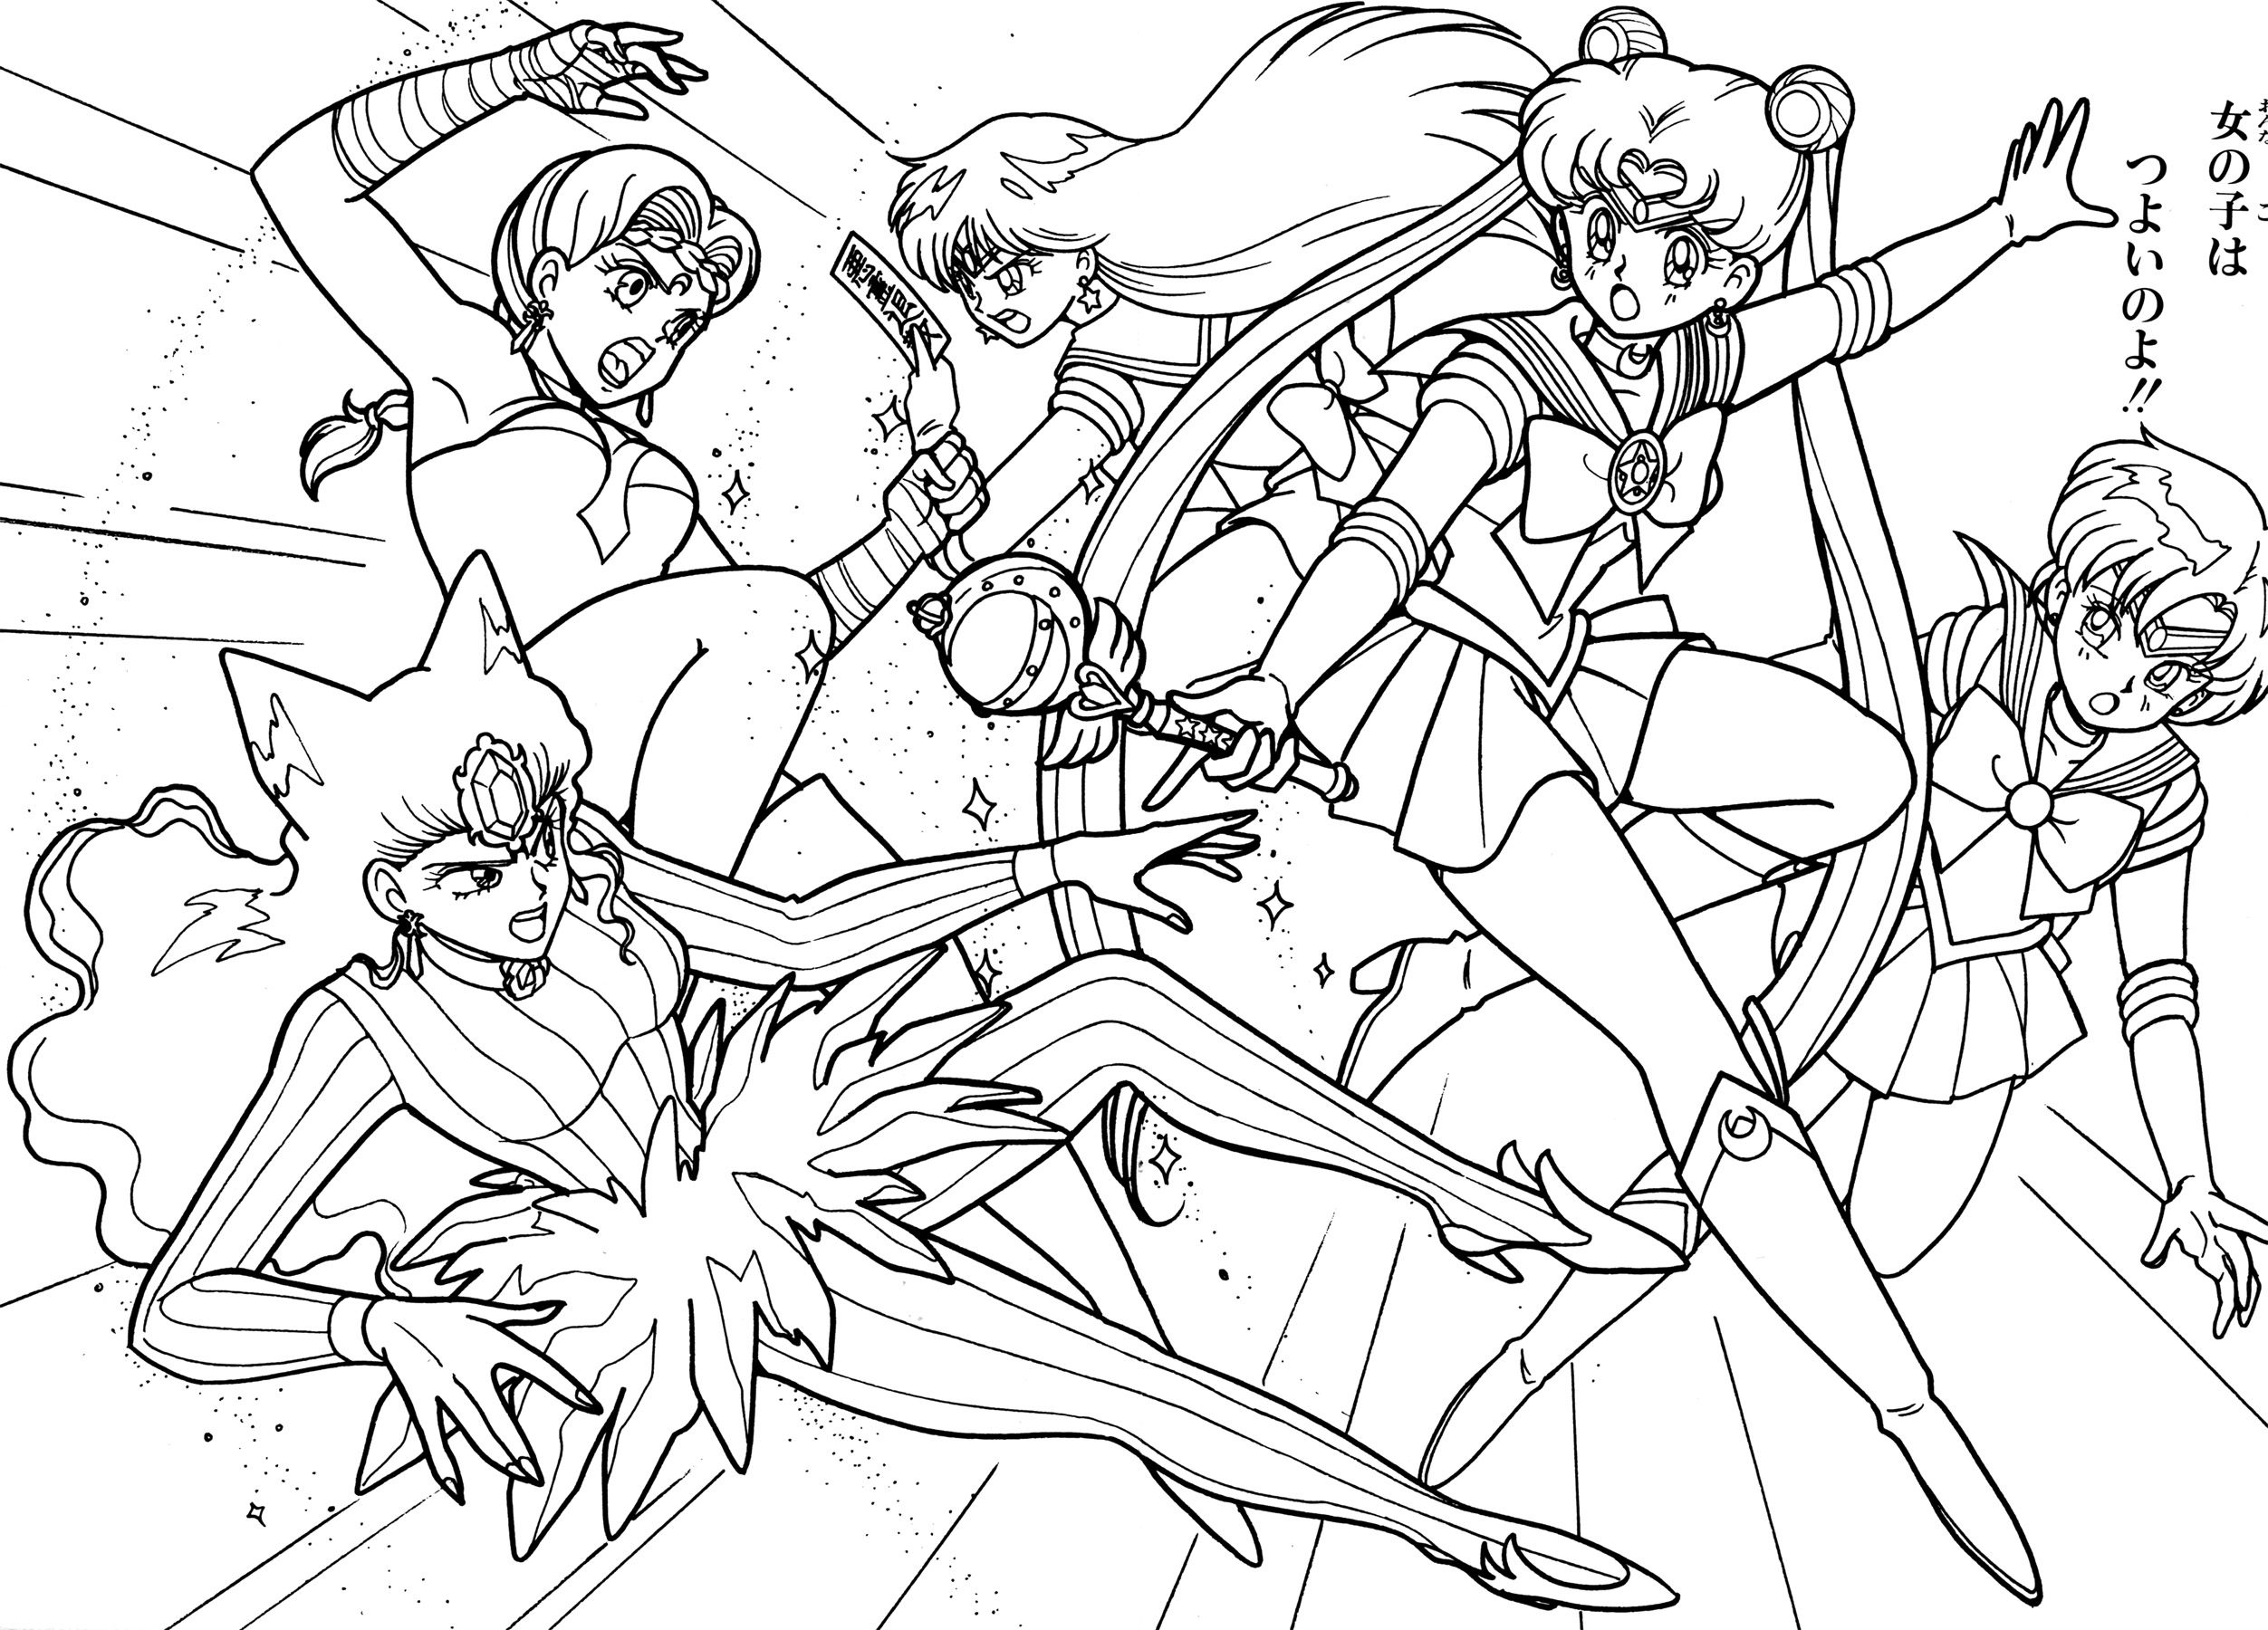 Sailor Cosmos Lineart By Hinderence.deviantart.com On